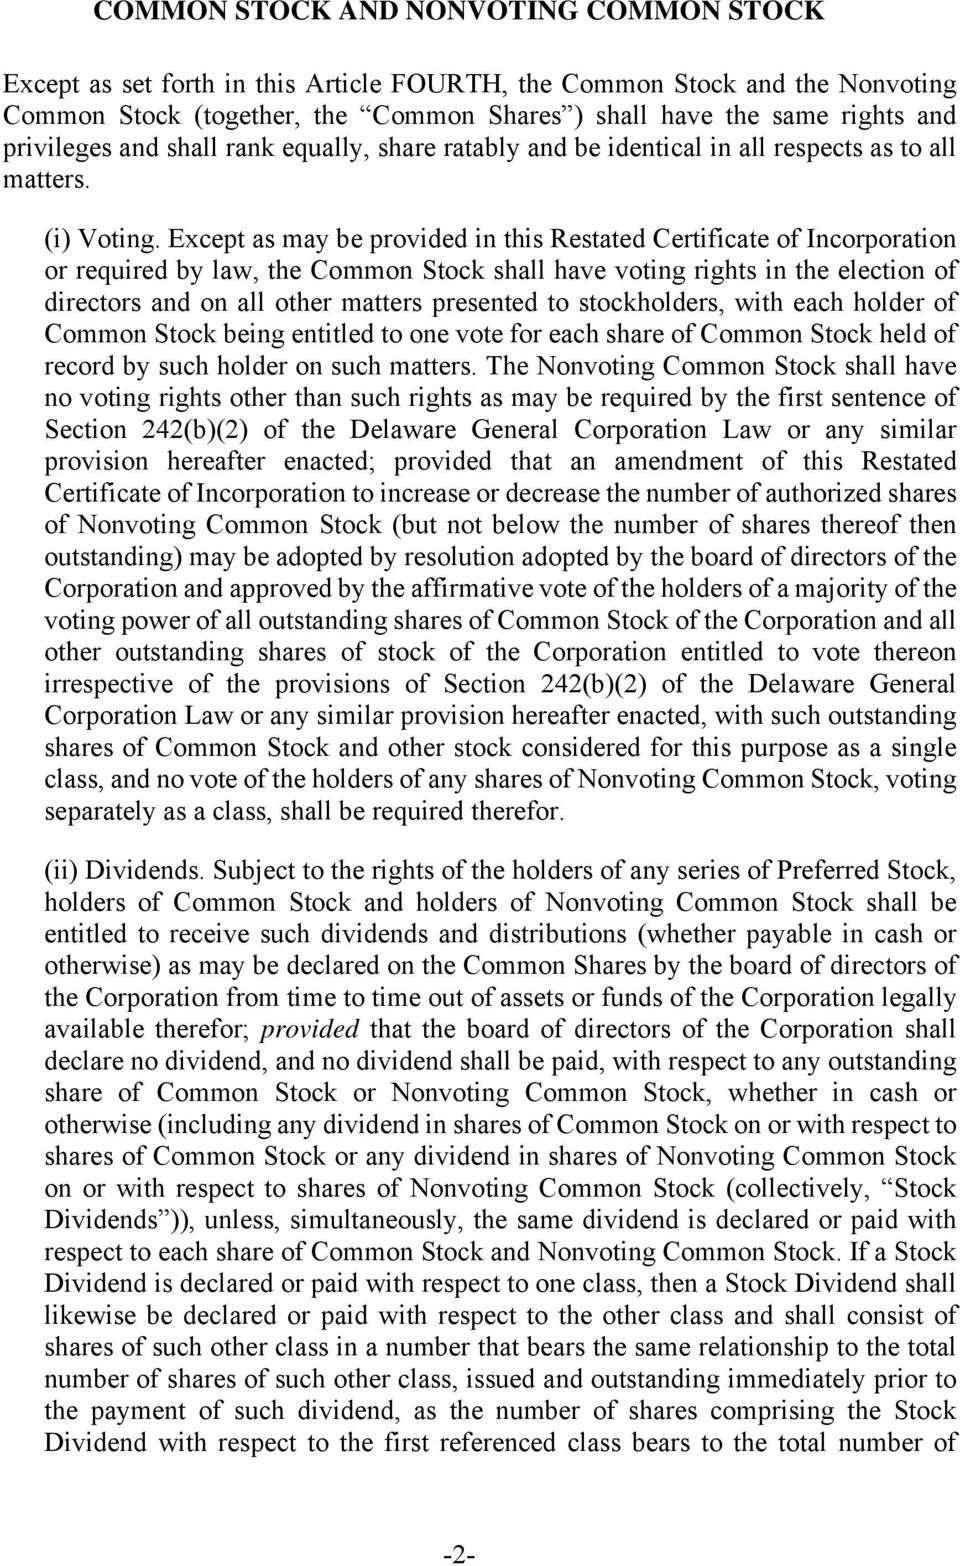 Except as may be provided in this Restated Certificate of Incorporation or required by law, the Common Stock shall have voting rights in the election of directors and on all other matters presented